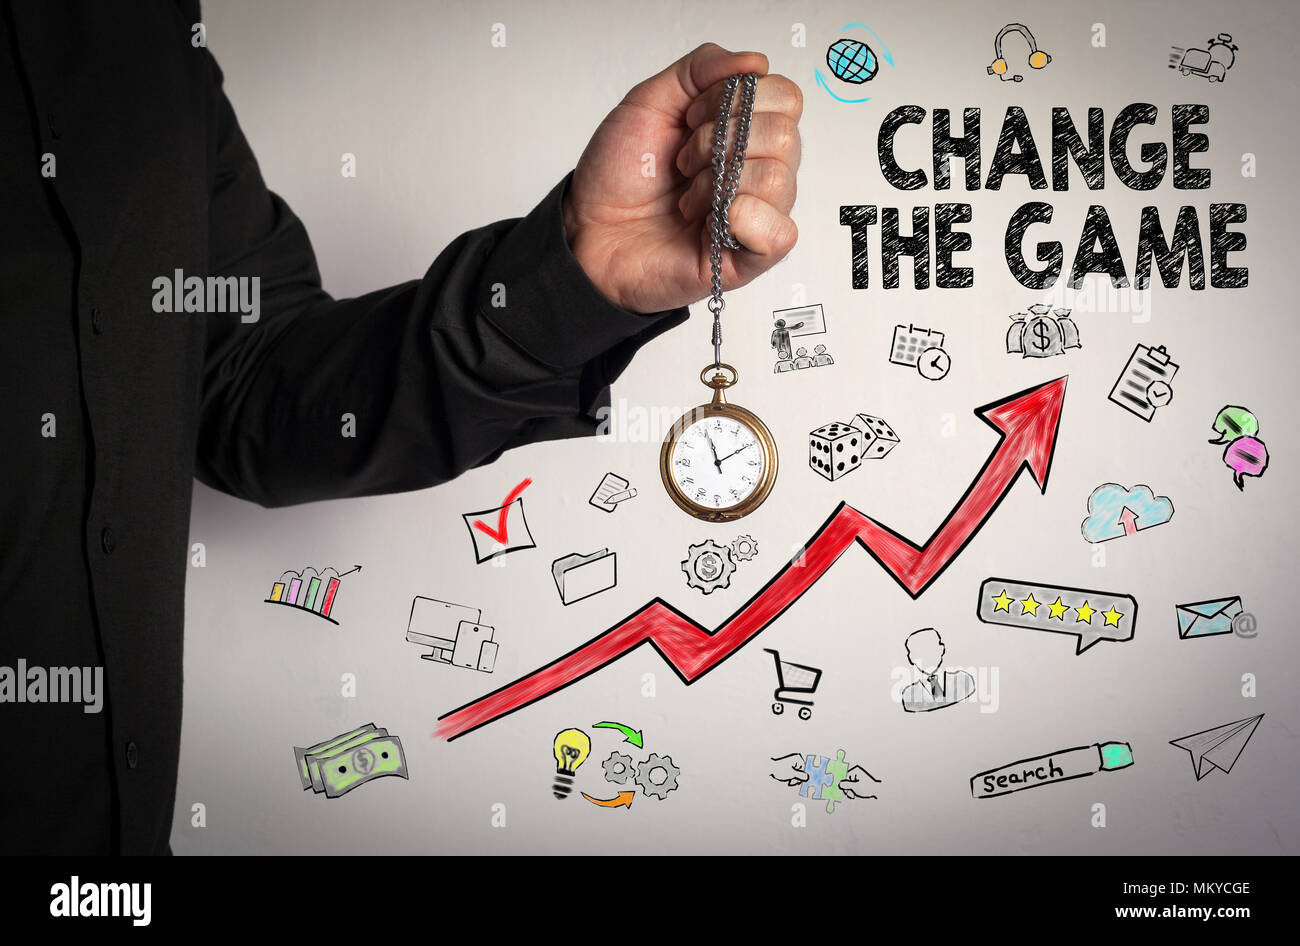 Change the game. Business concept - Stock Image